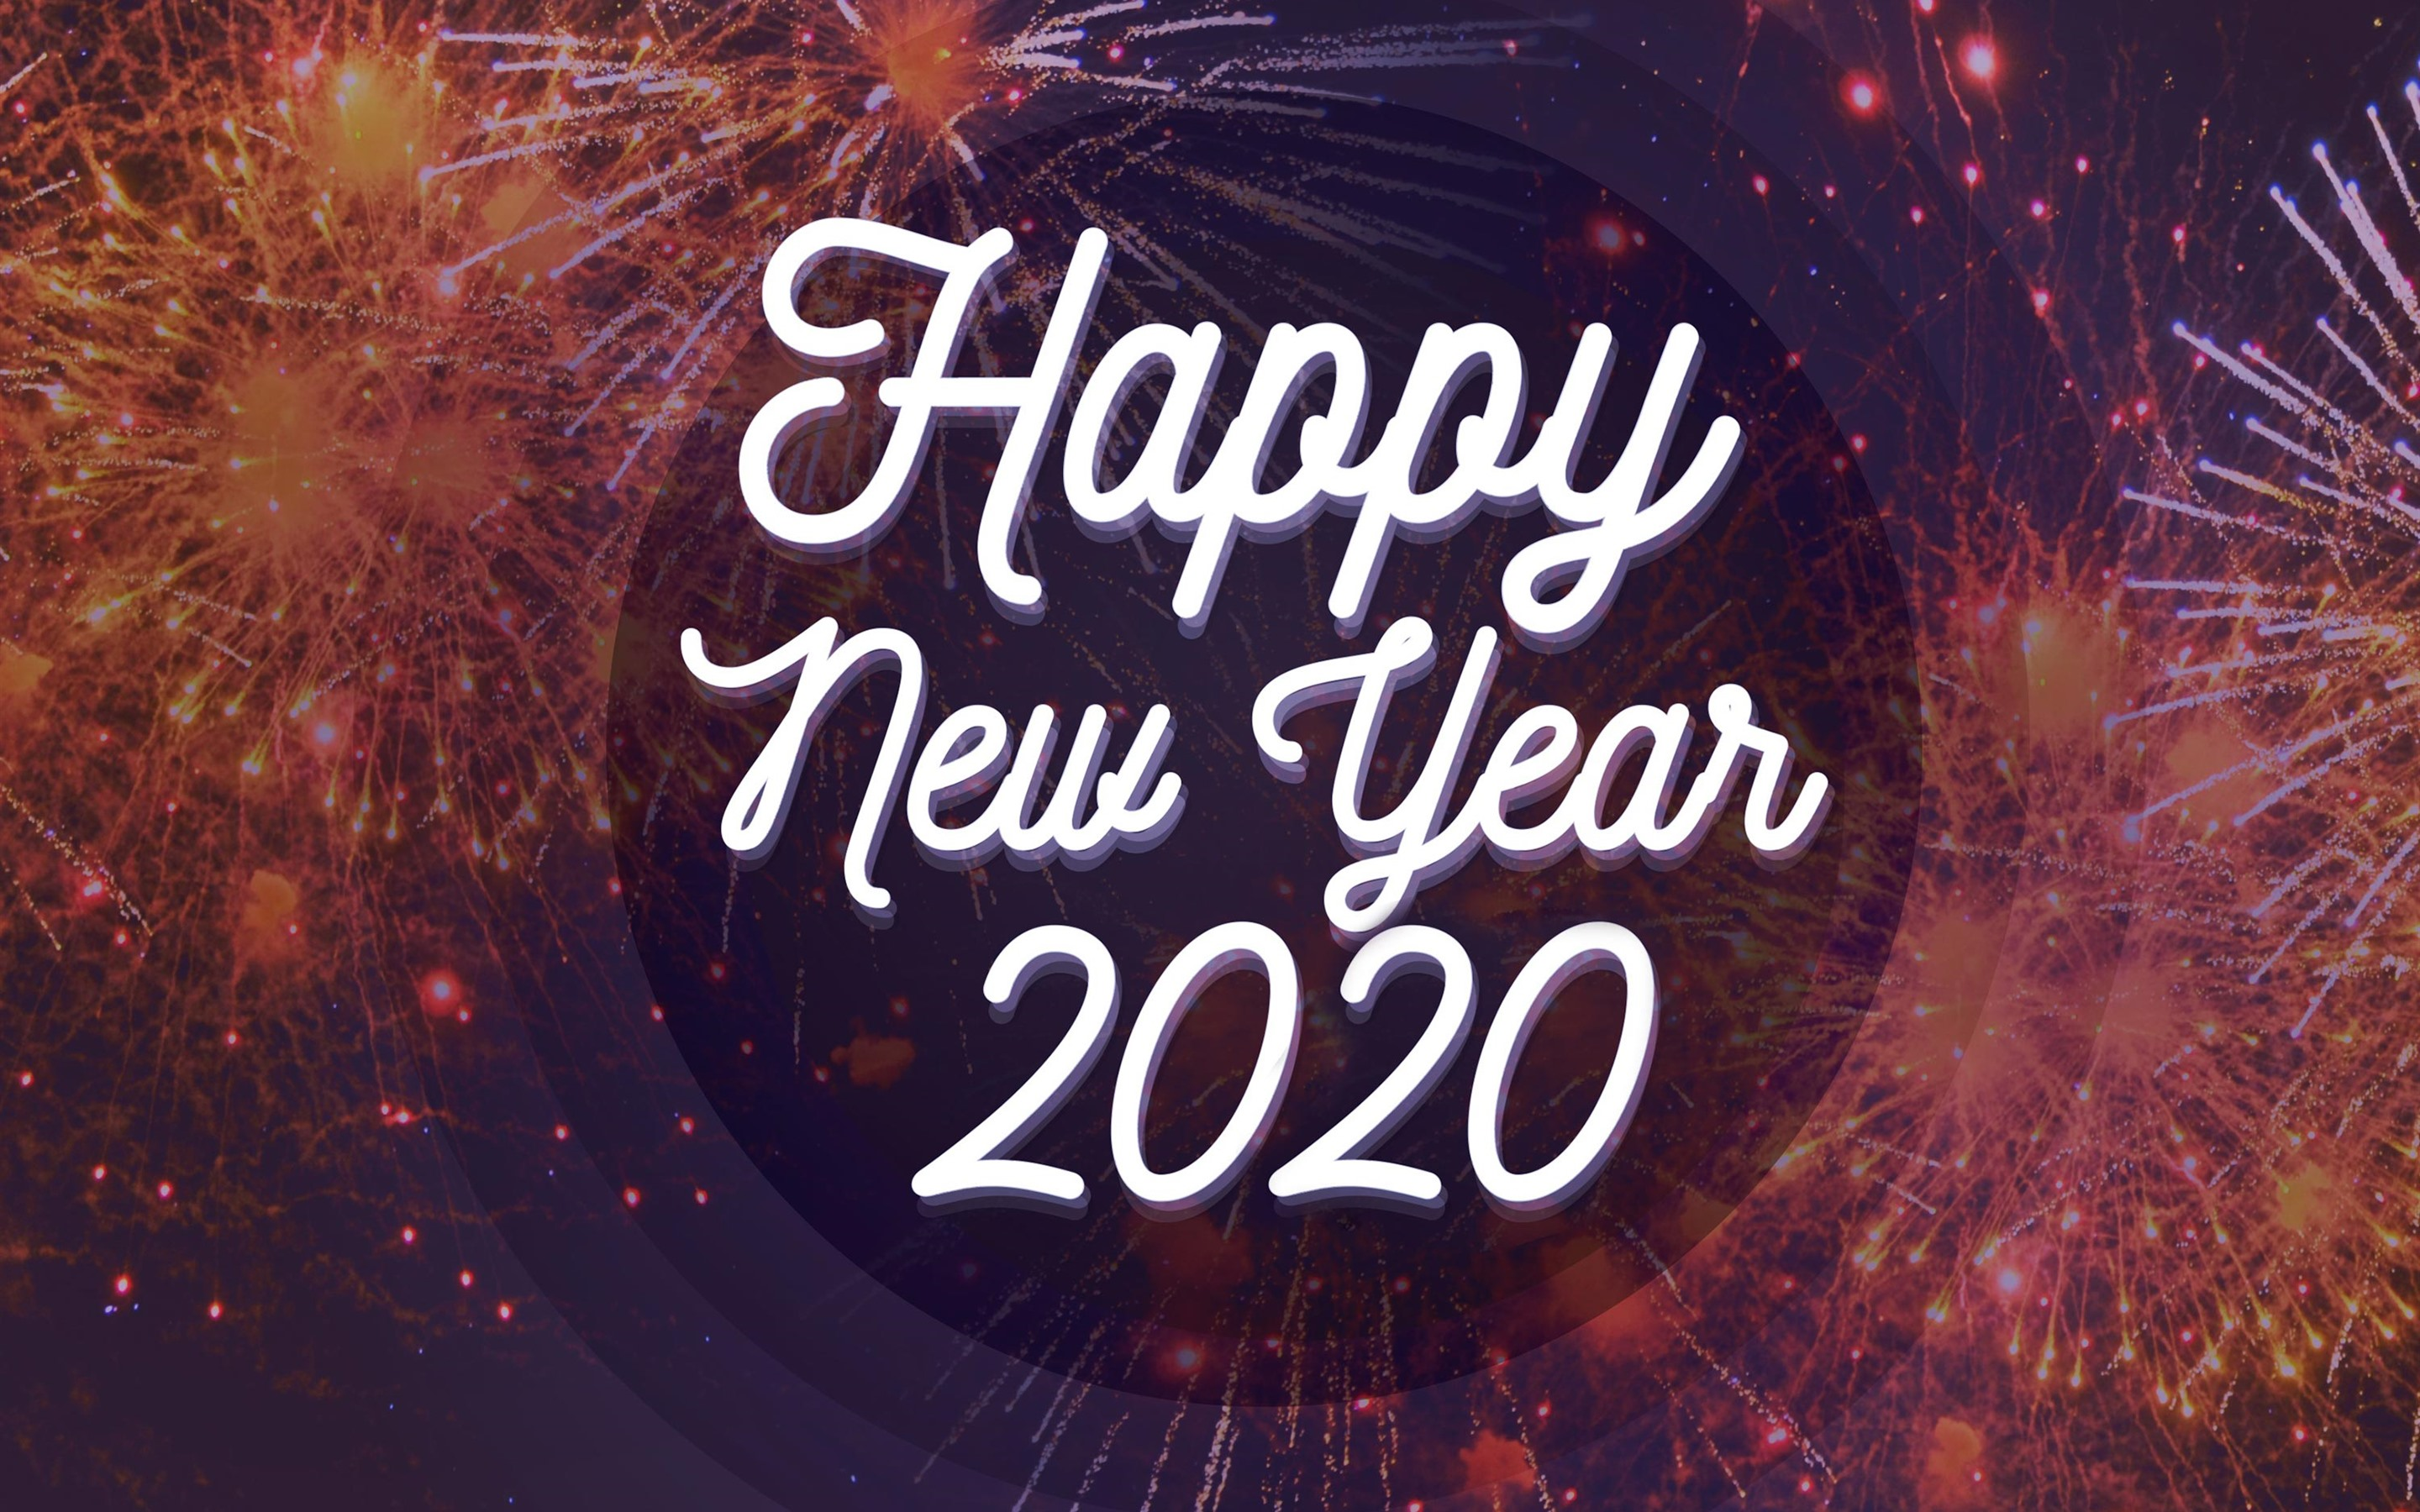 Wallpaper Happy New Year 2020 Fireworks Background 2880x1800 Hd